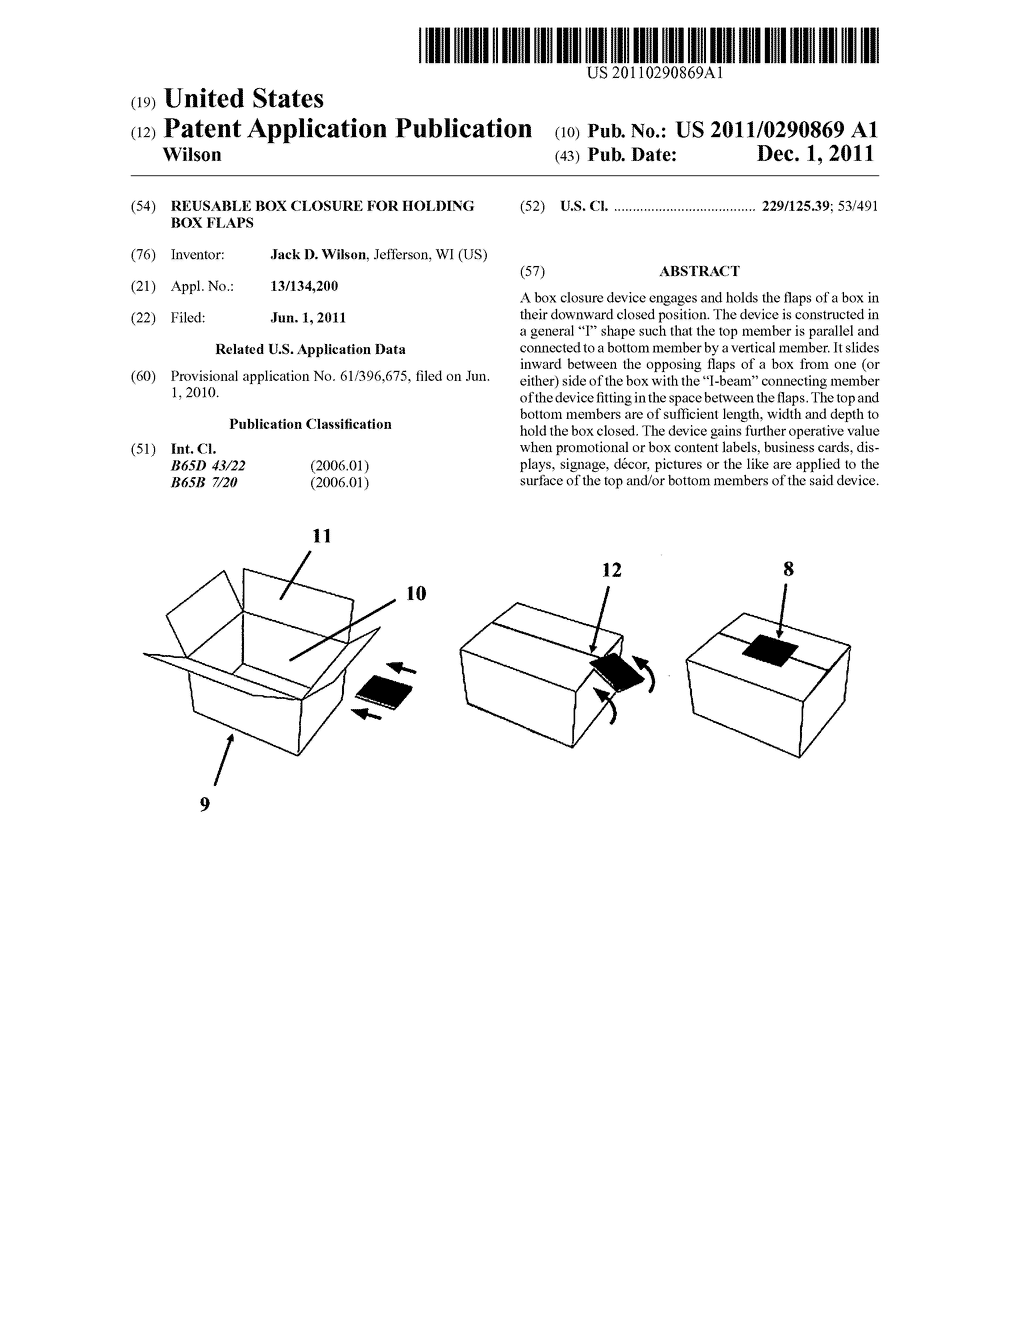 Reusable Box Closure For Holding Flaps Diagram Schematic And Circuit Of Zener Diode Image 01